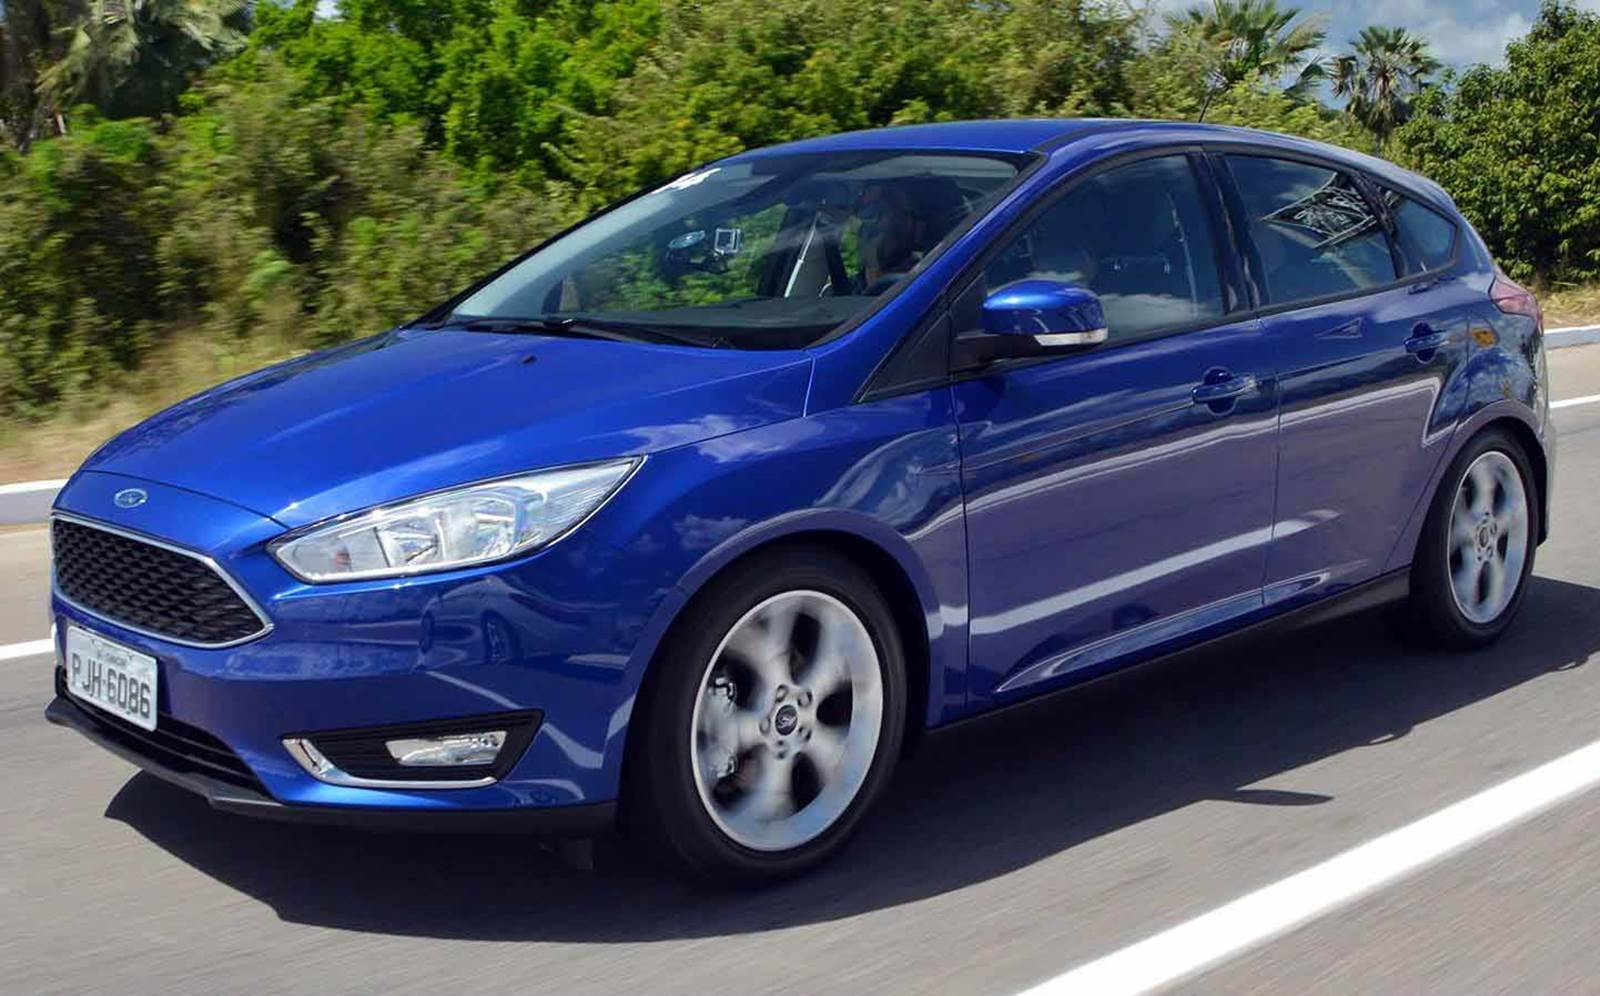 Ford Focus Powershift 2016 - problemas